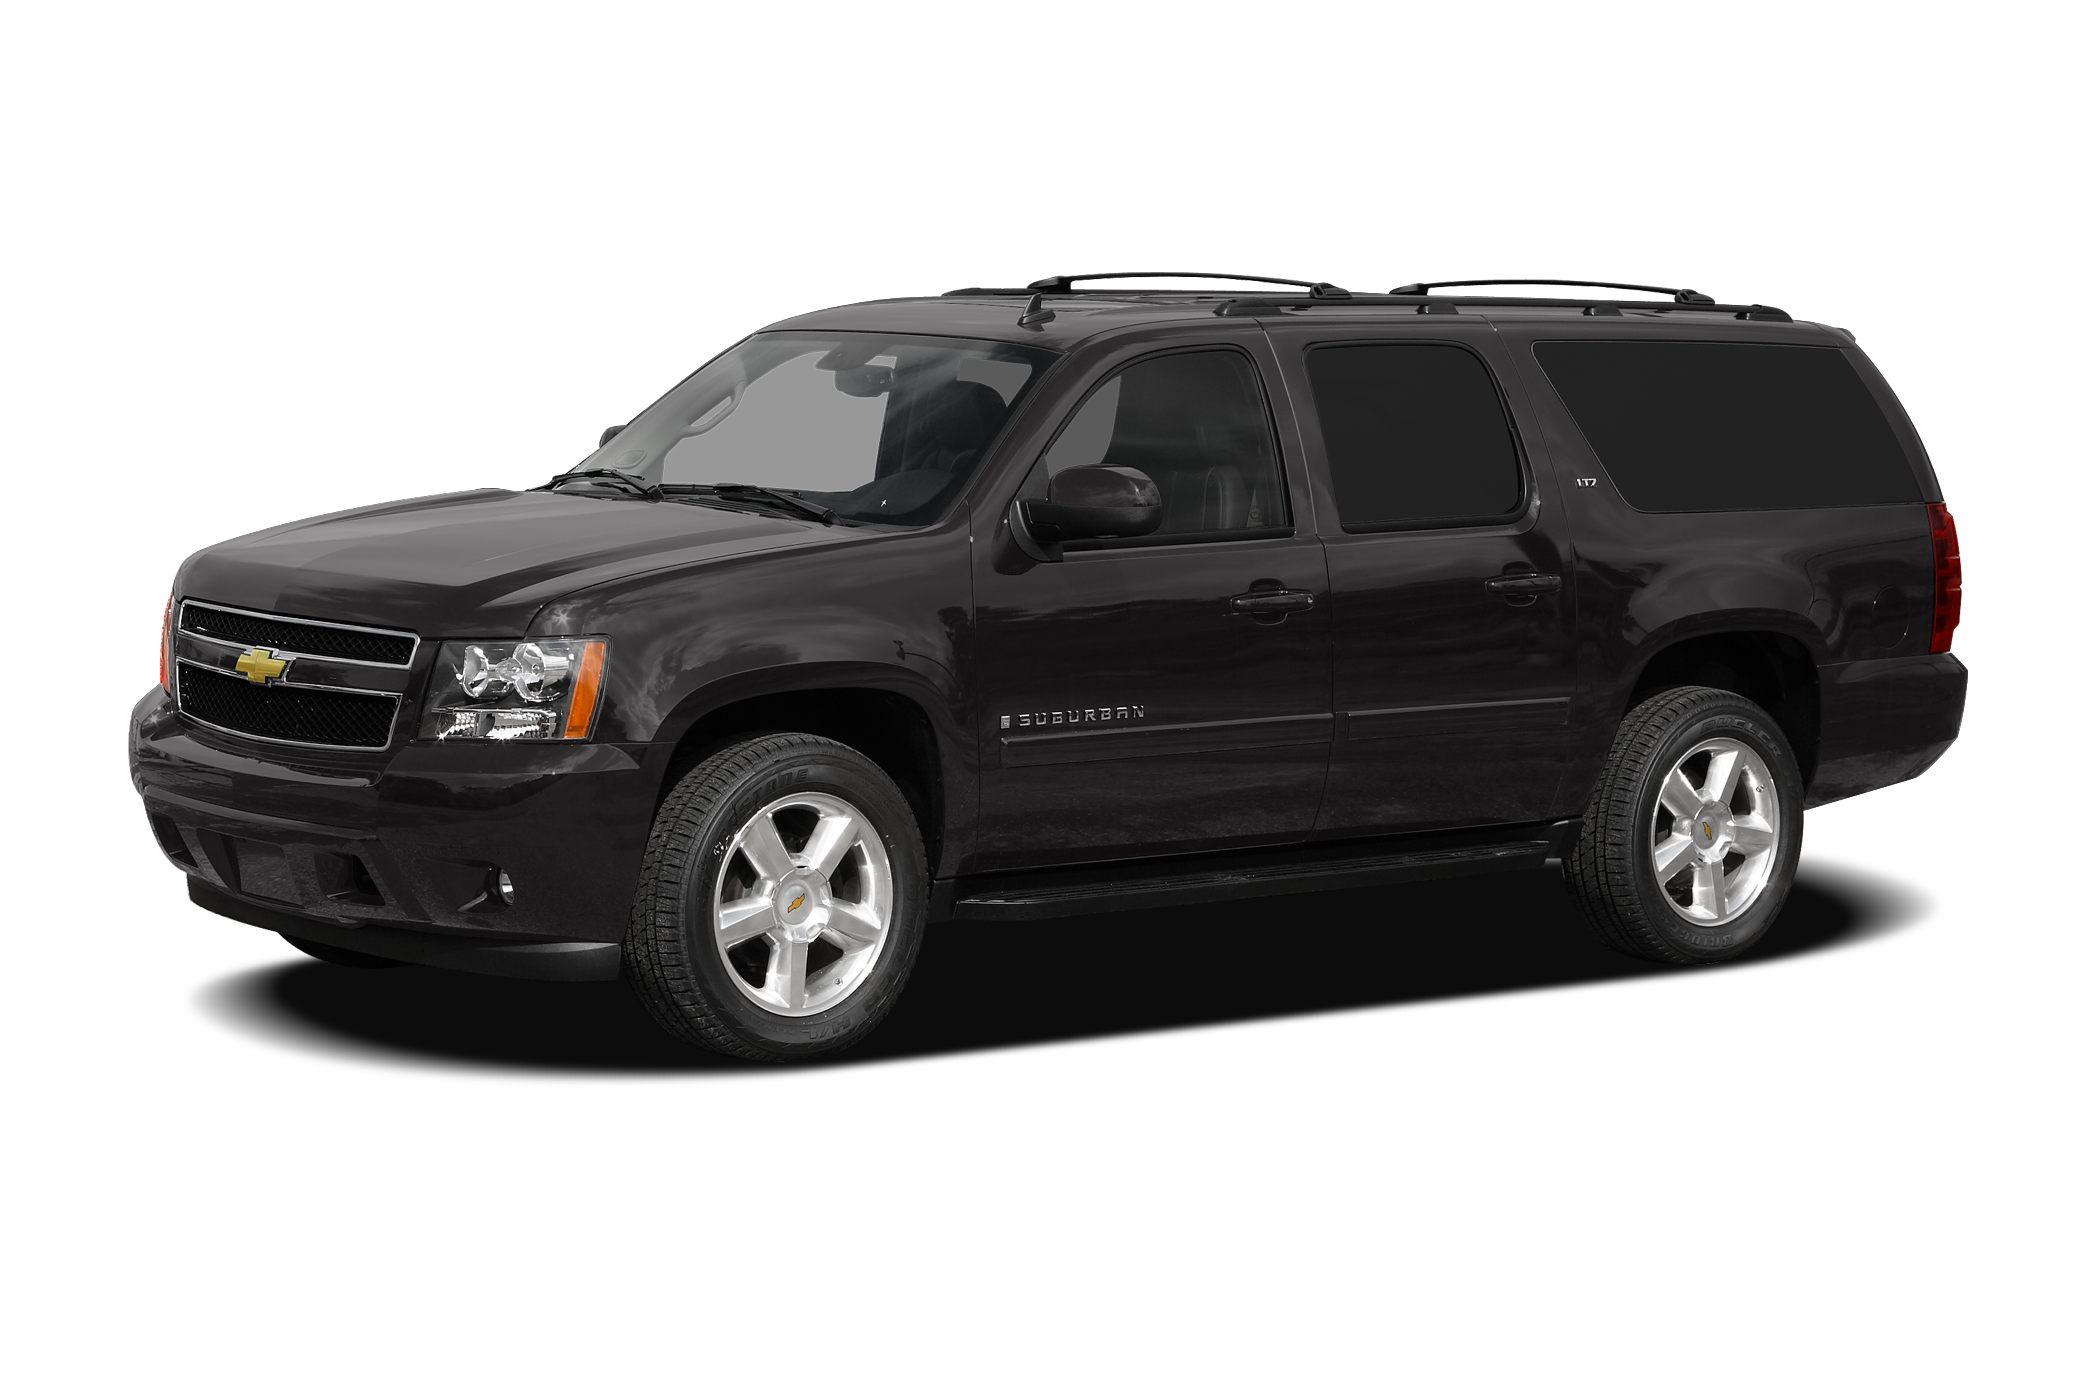 2007 Chevrolet Suburban 1500 Specs And Prices